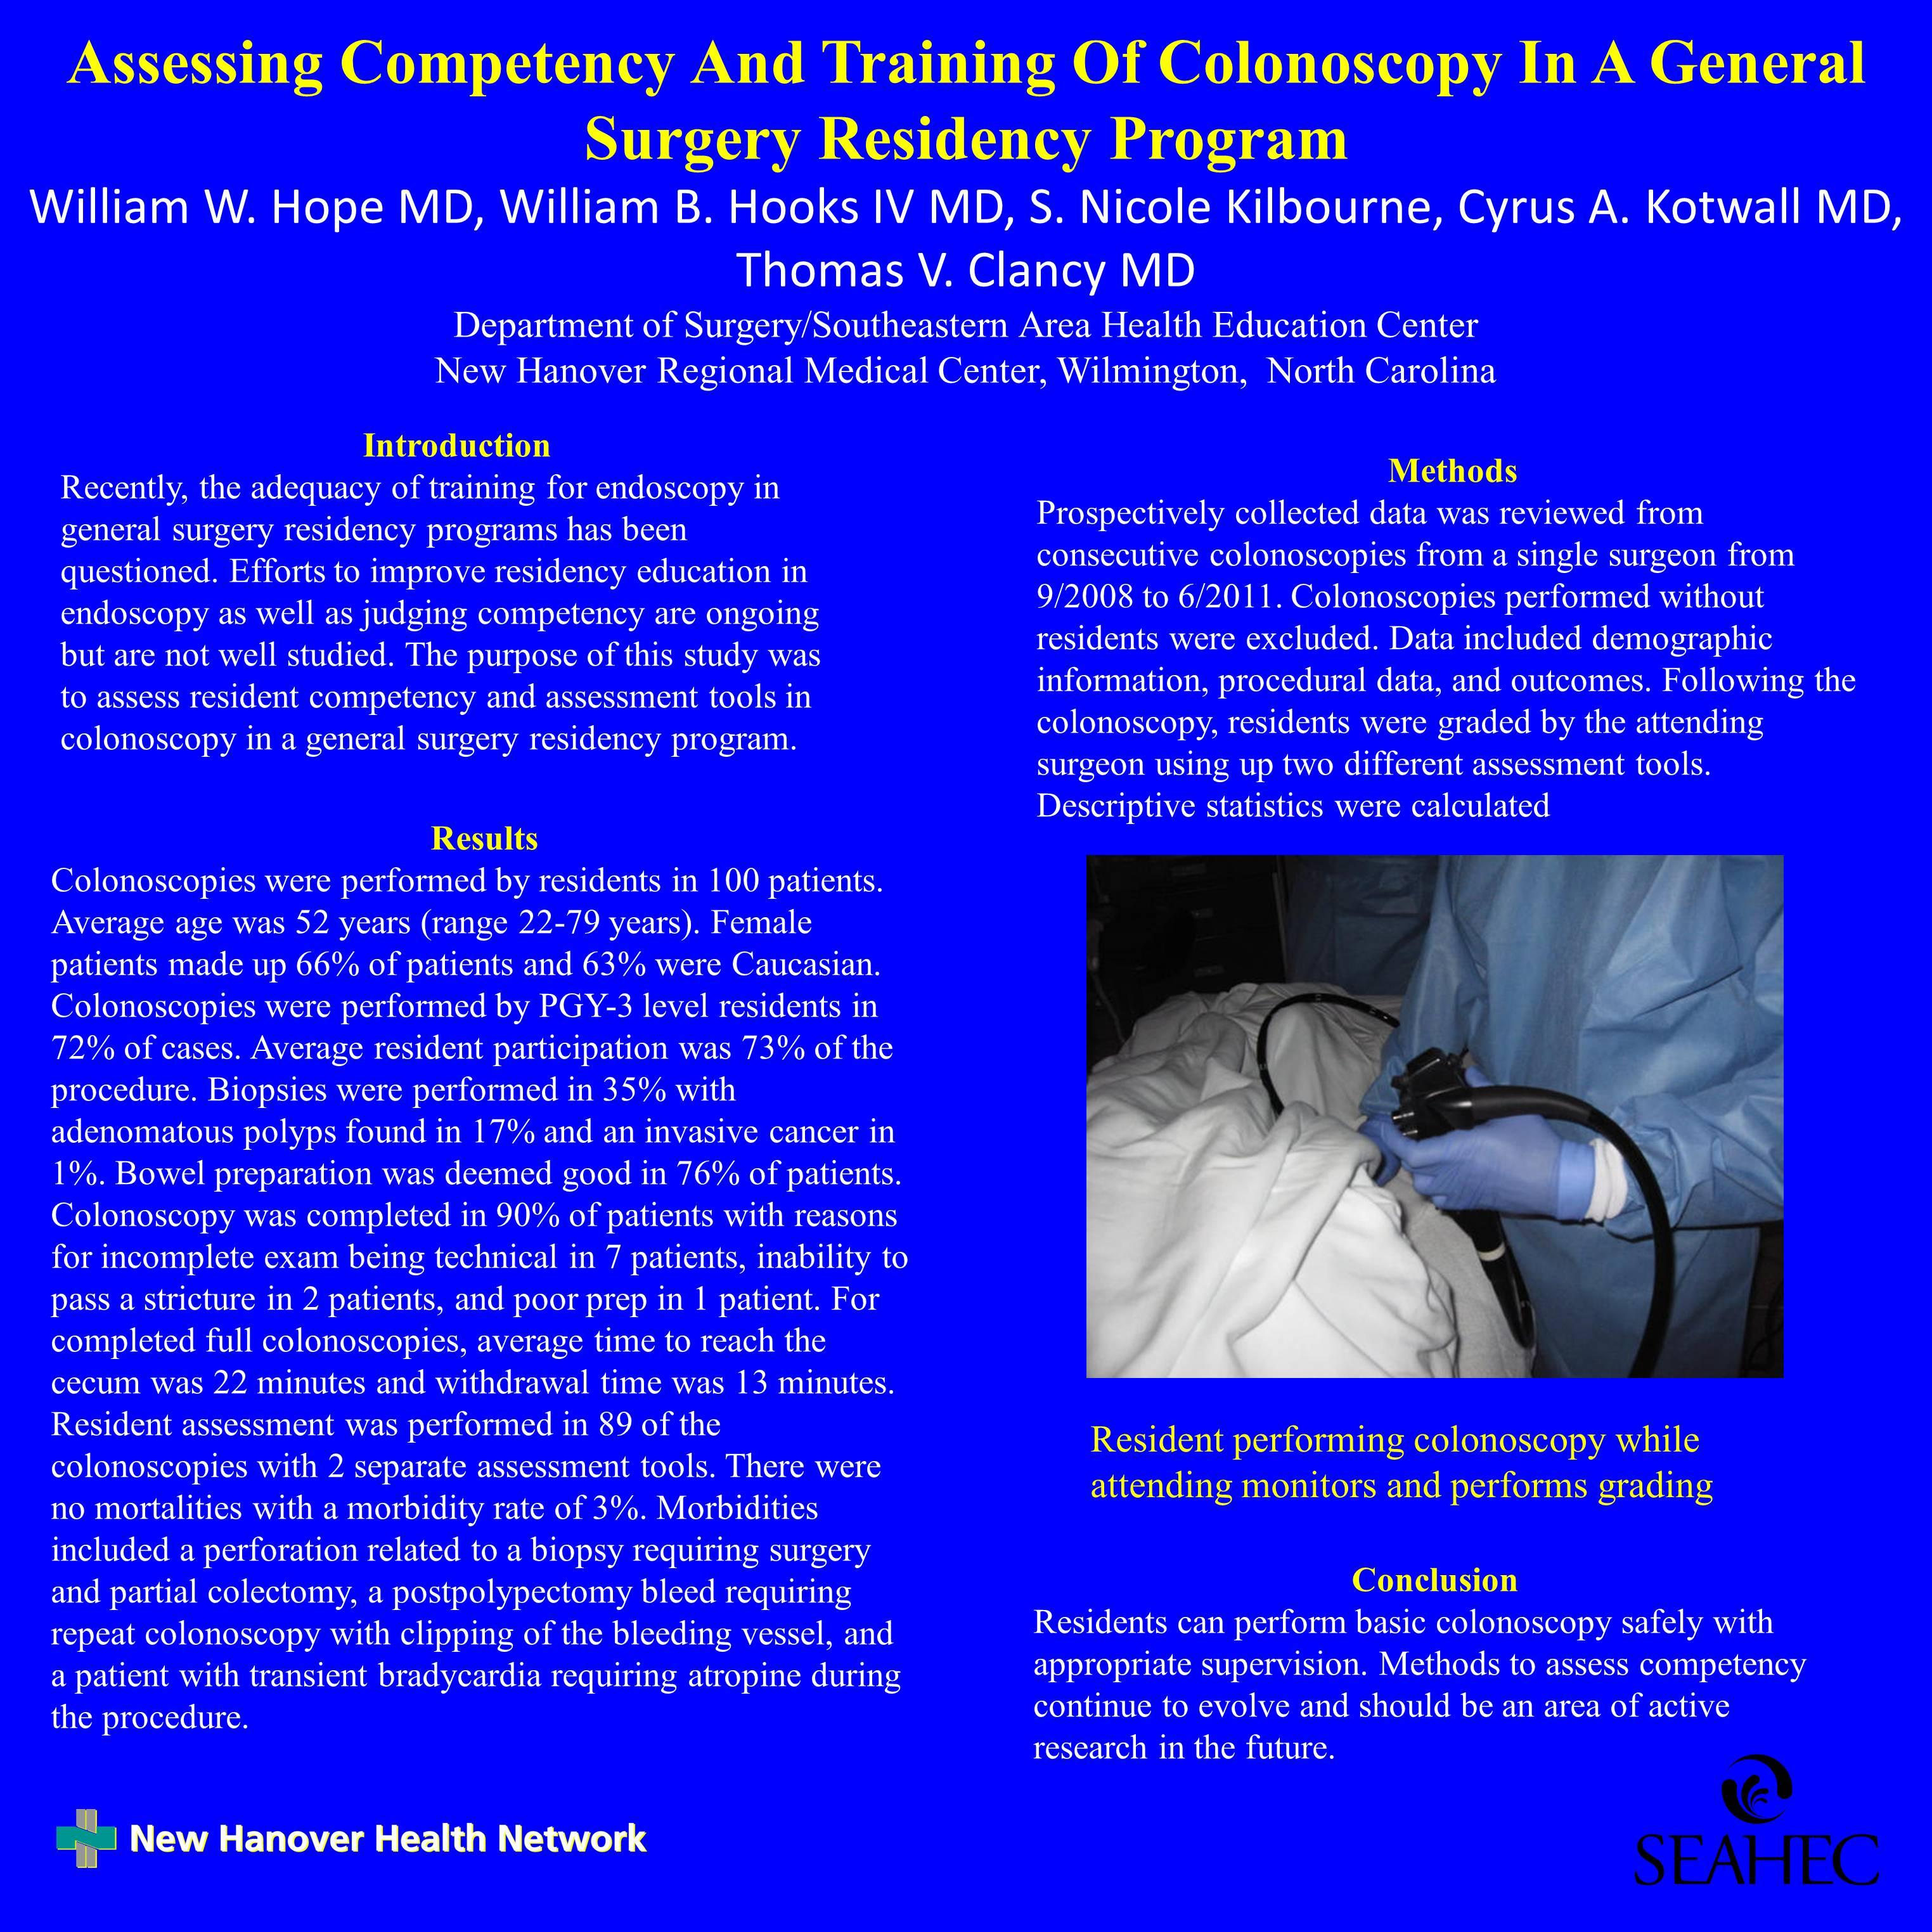 Assessing Competency and Training of Colonoscopy in a